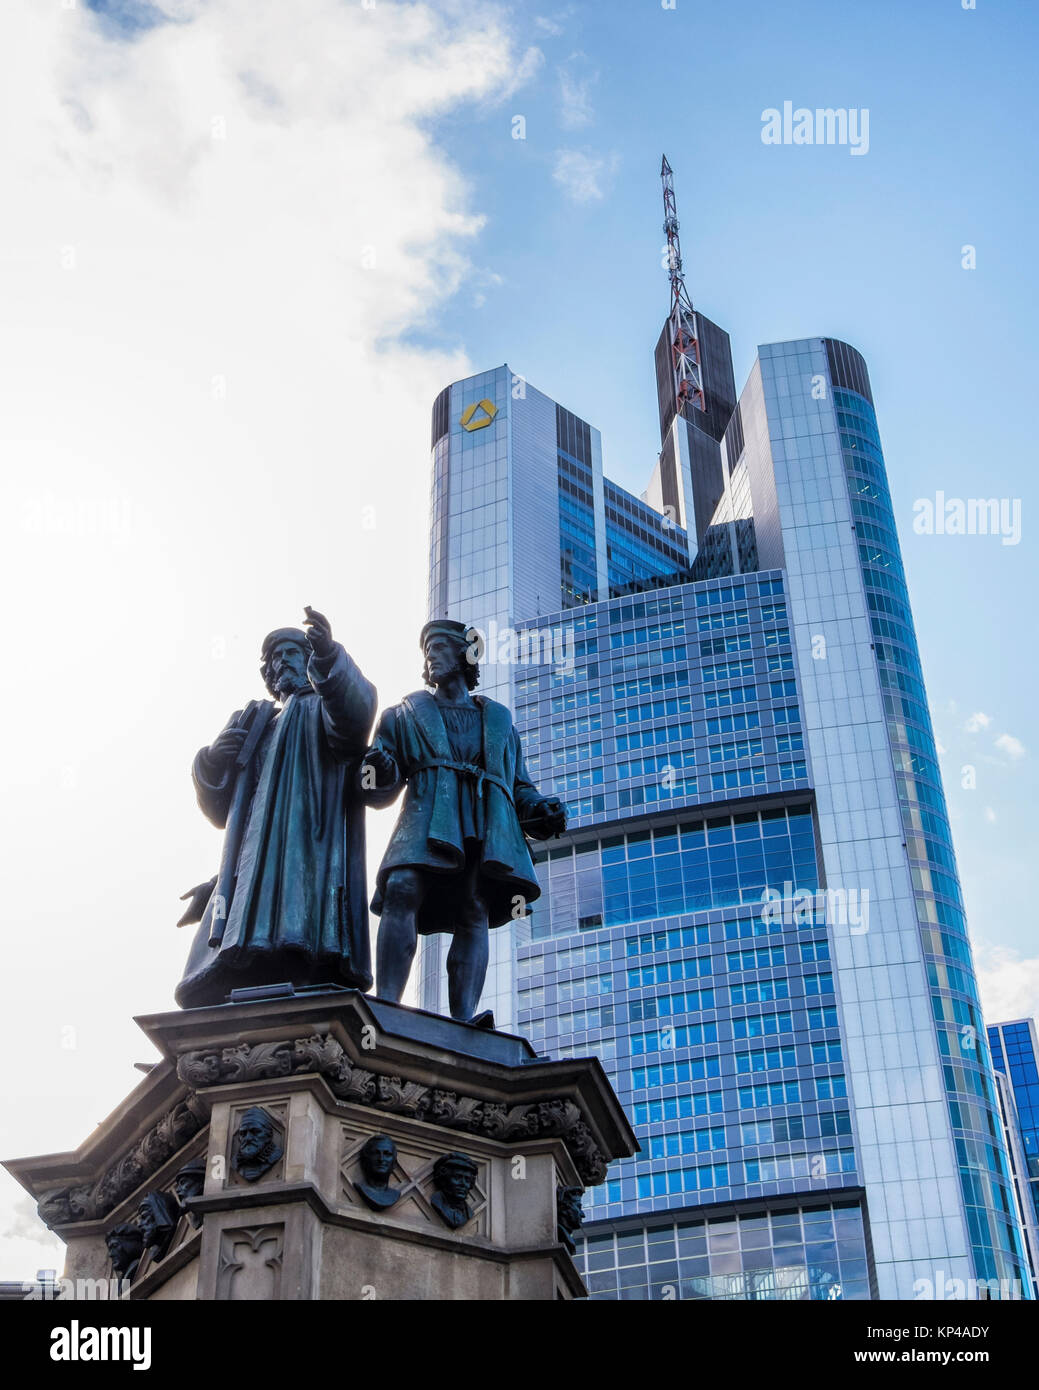 Frankfurt,Rossmarkt square. Johannes Gutenberg memorial statue honours the inventor of the printing press in front - Stock Image